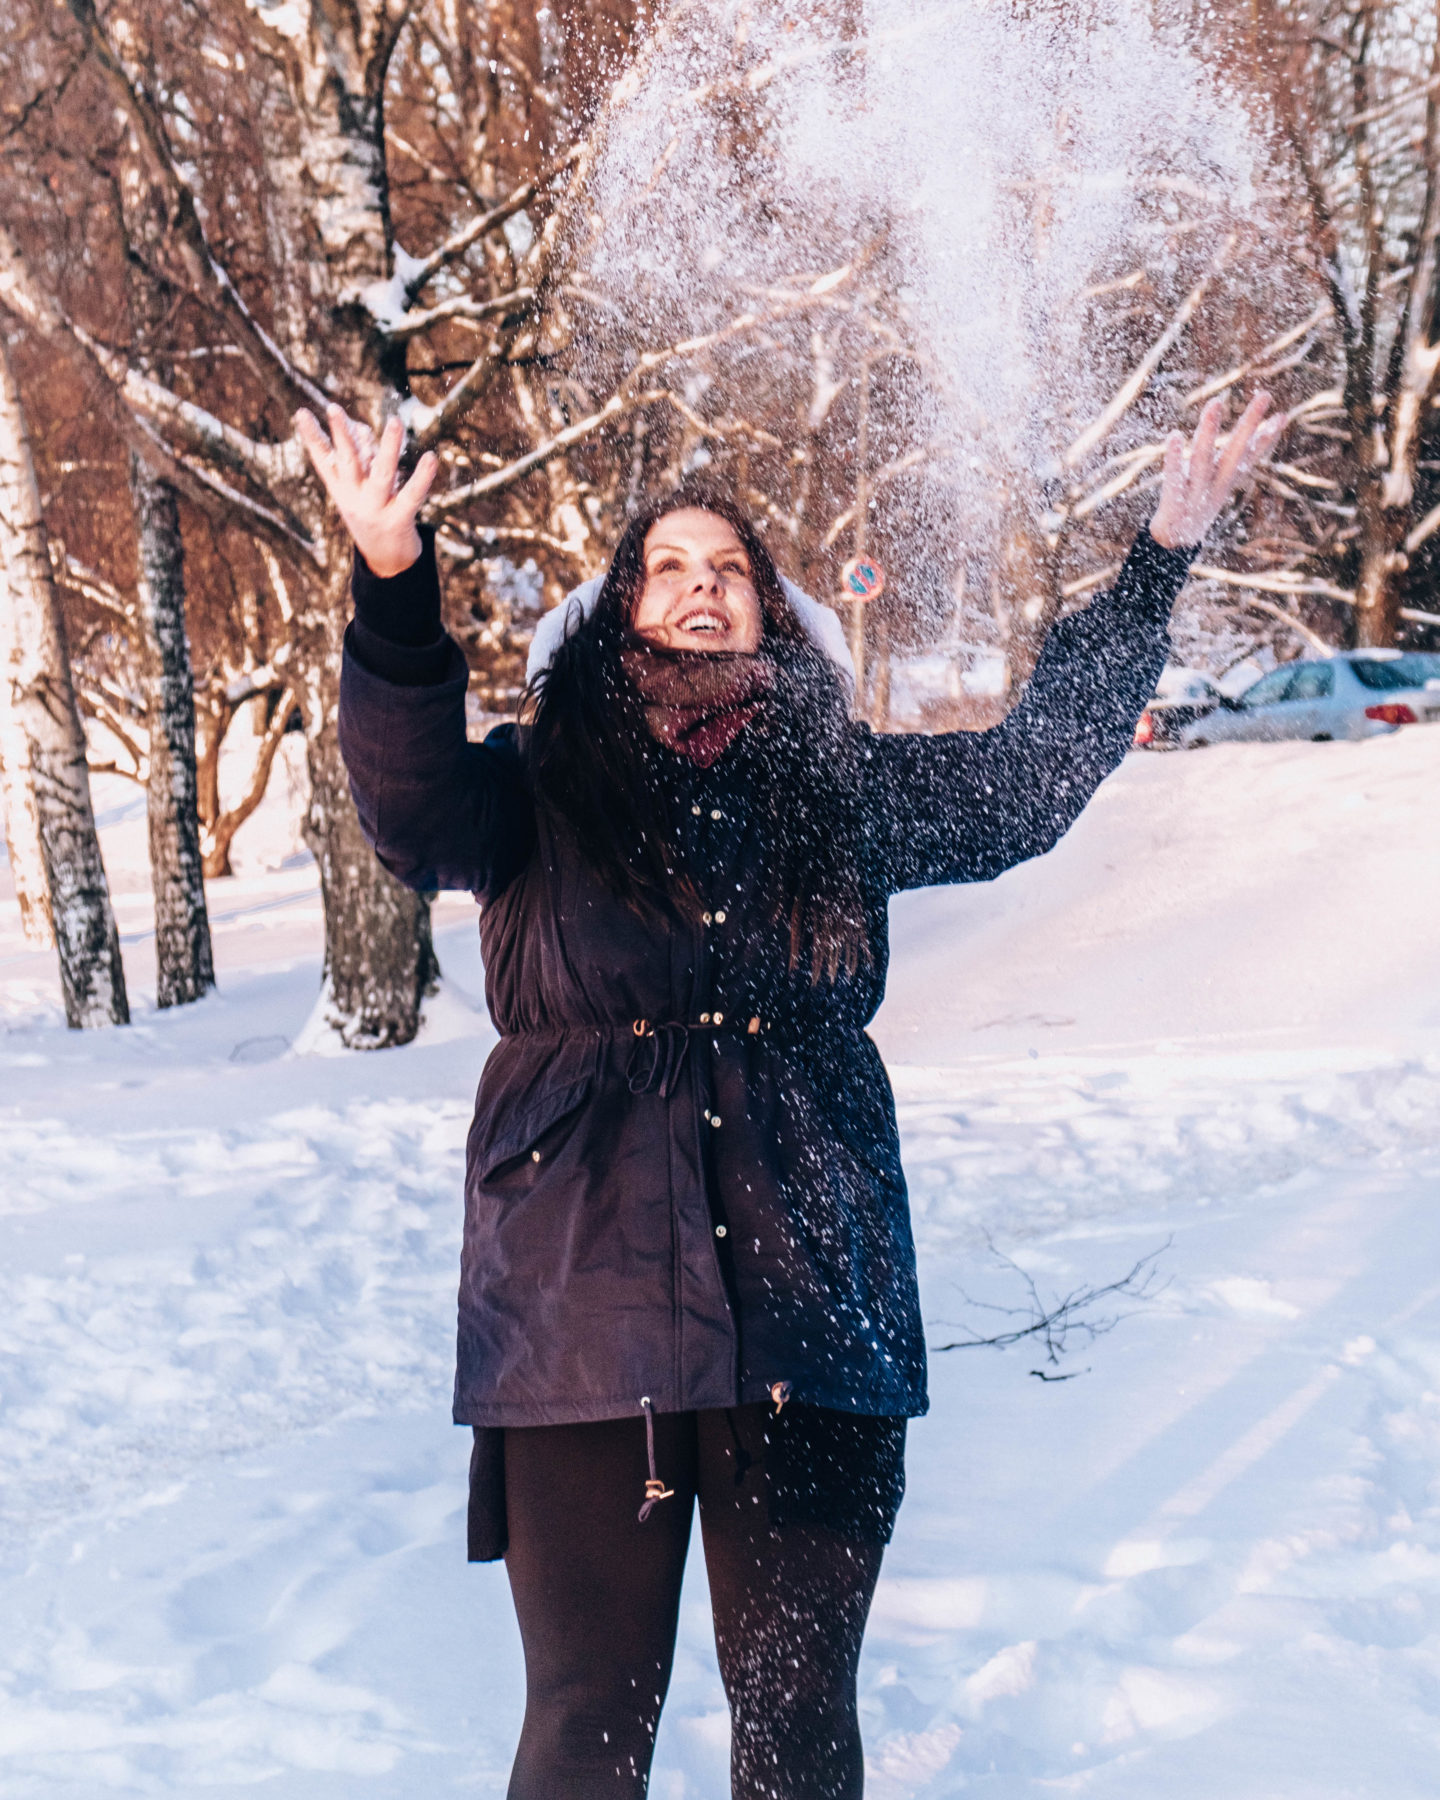 things to do in helsinki in the winter - play with snow!